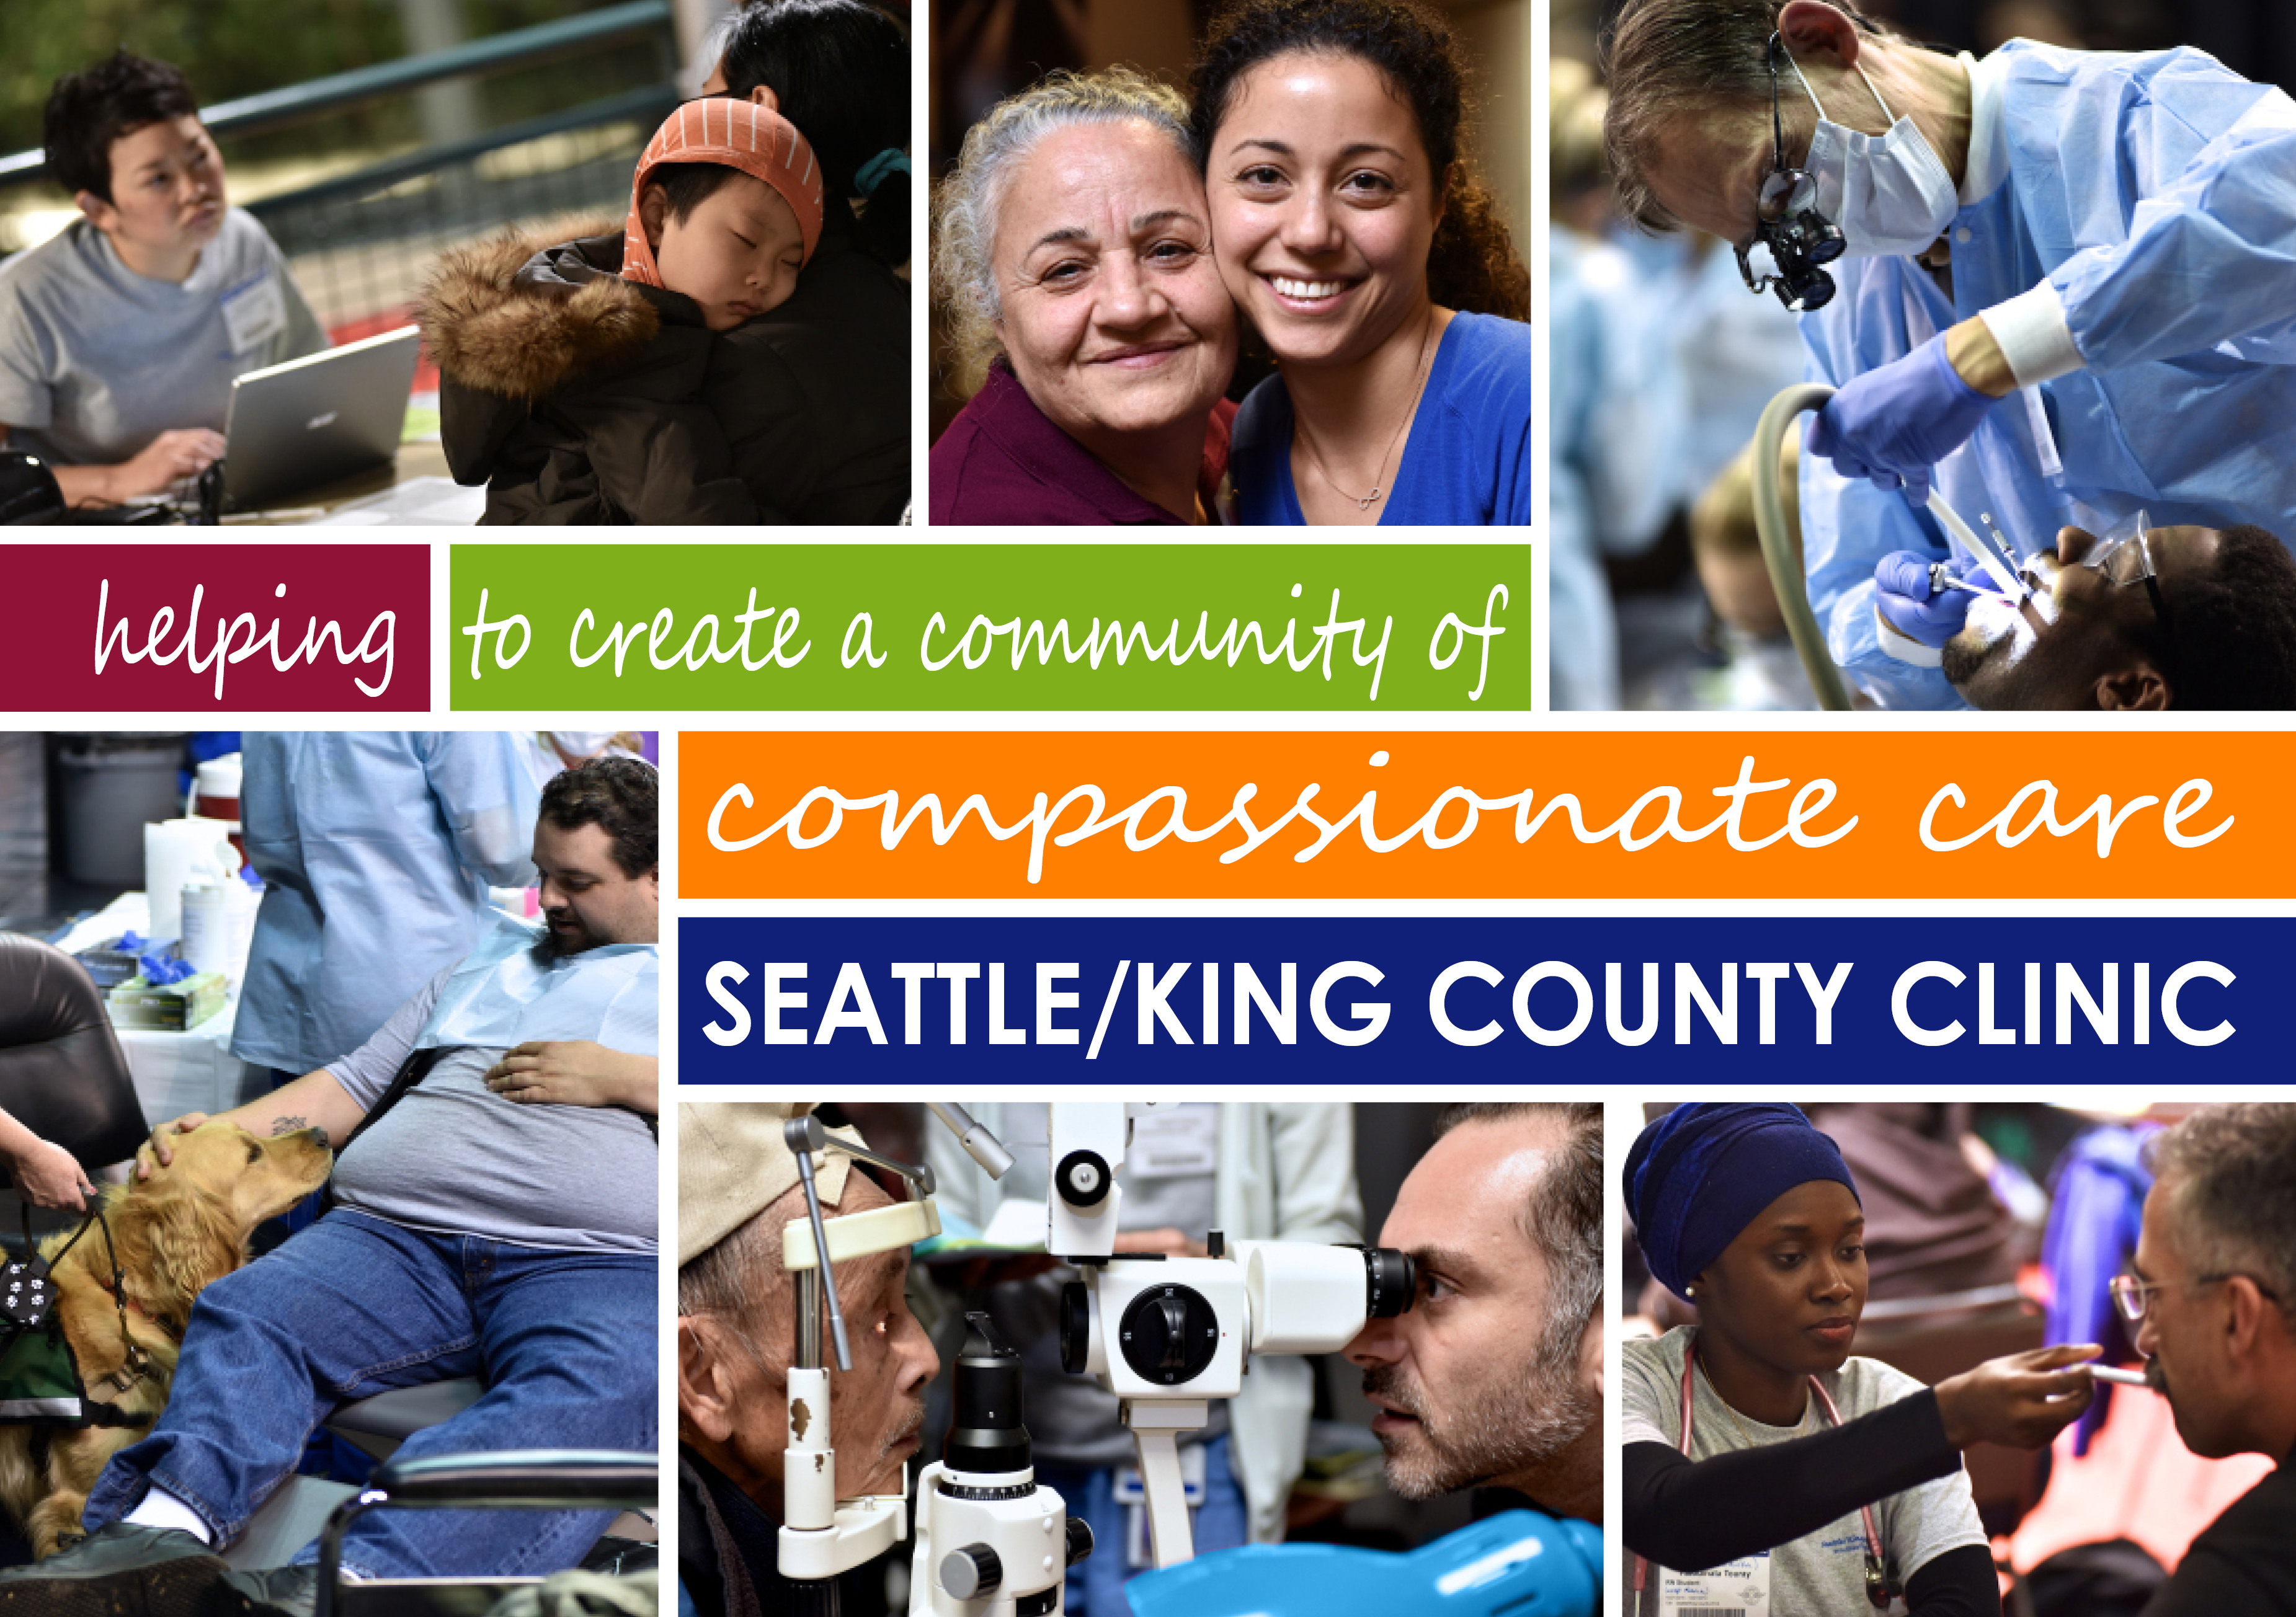 SeattleKing County Clinic to Offer Free Dental, Vision, Medical Services at Four-Day Health Clinic